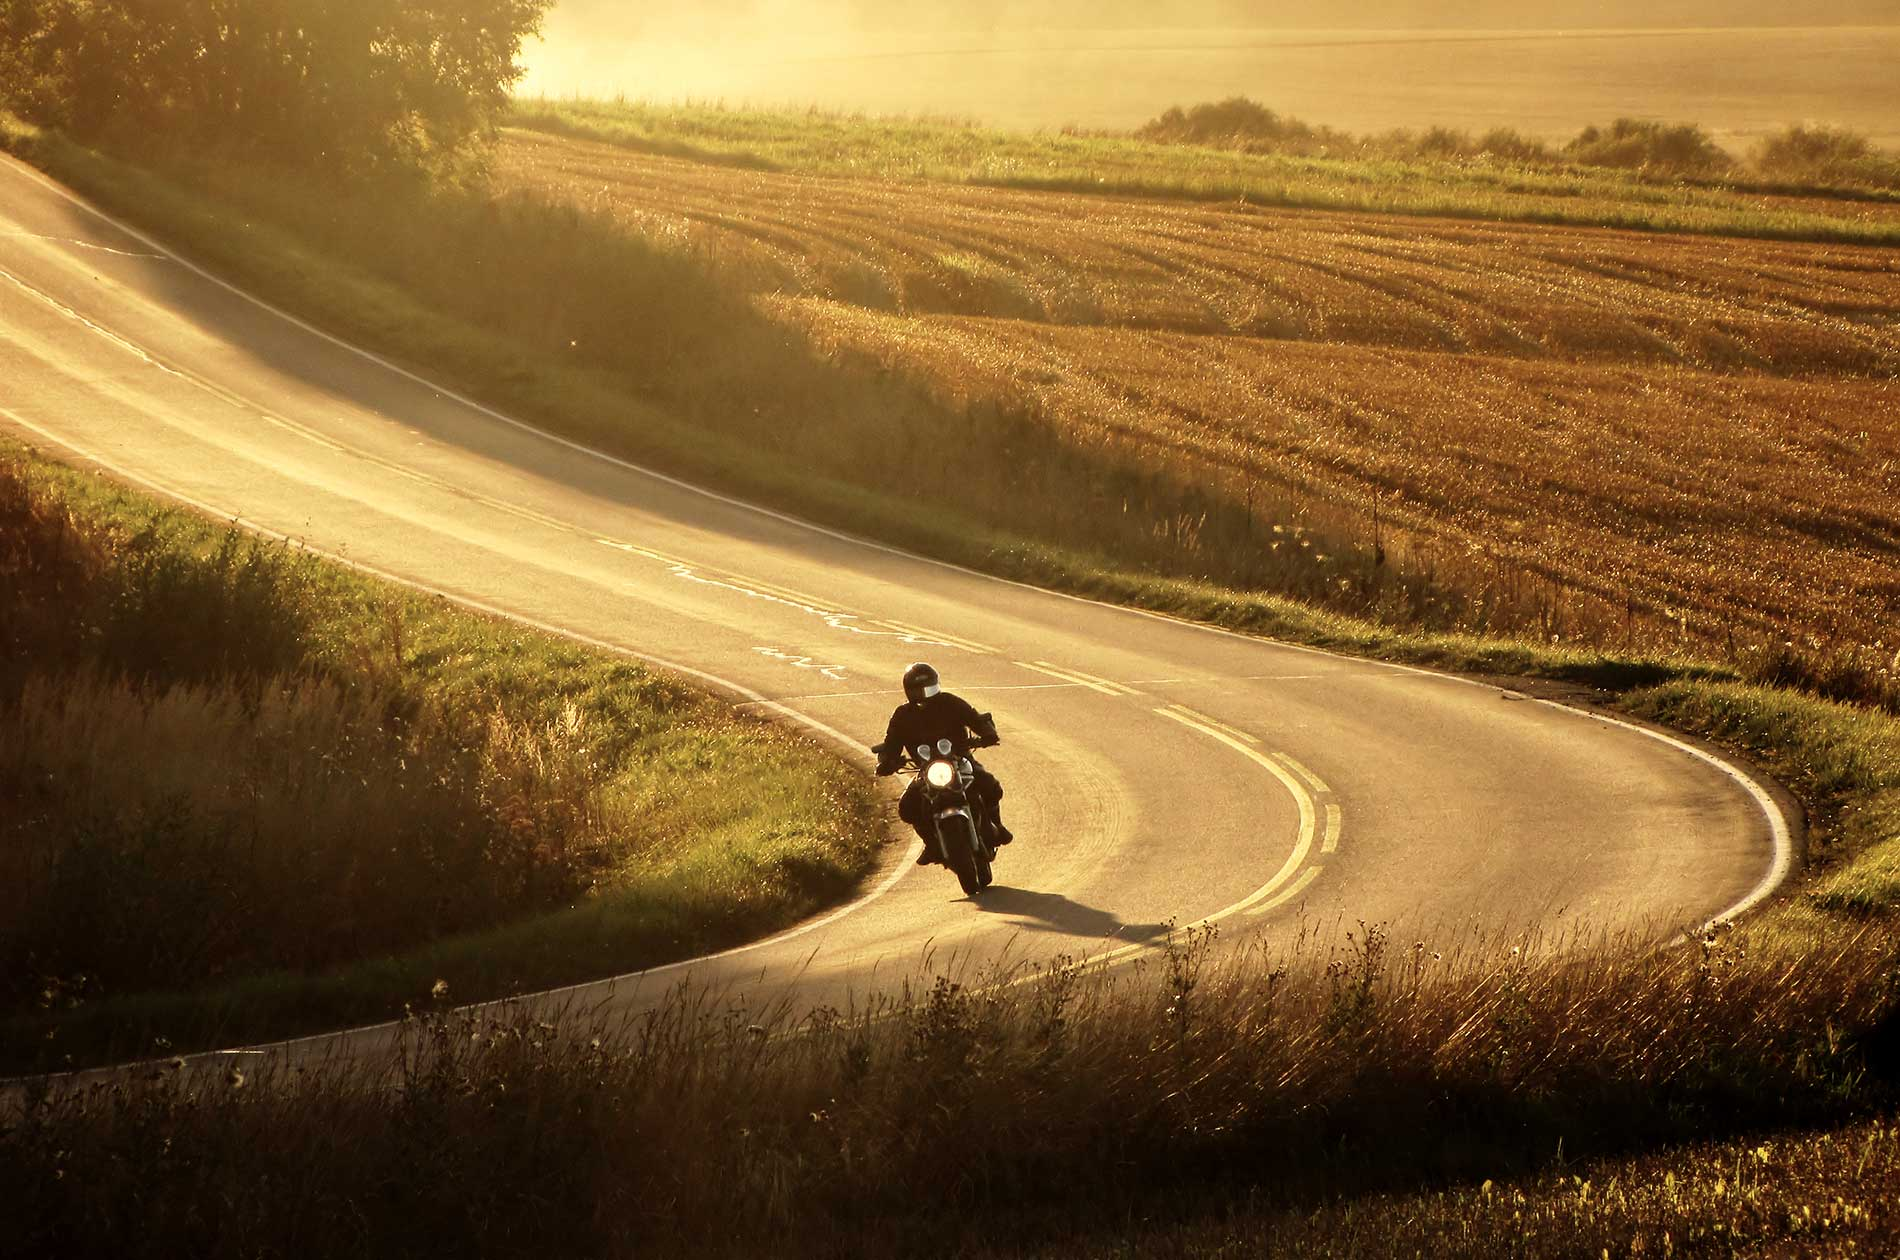 A motorcycle rider on a country road